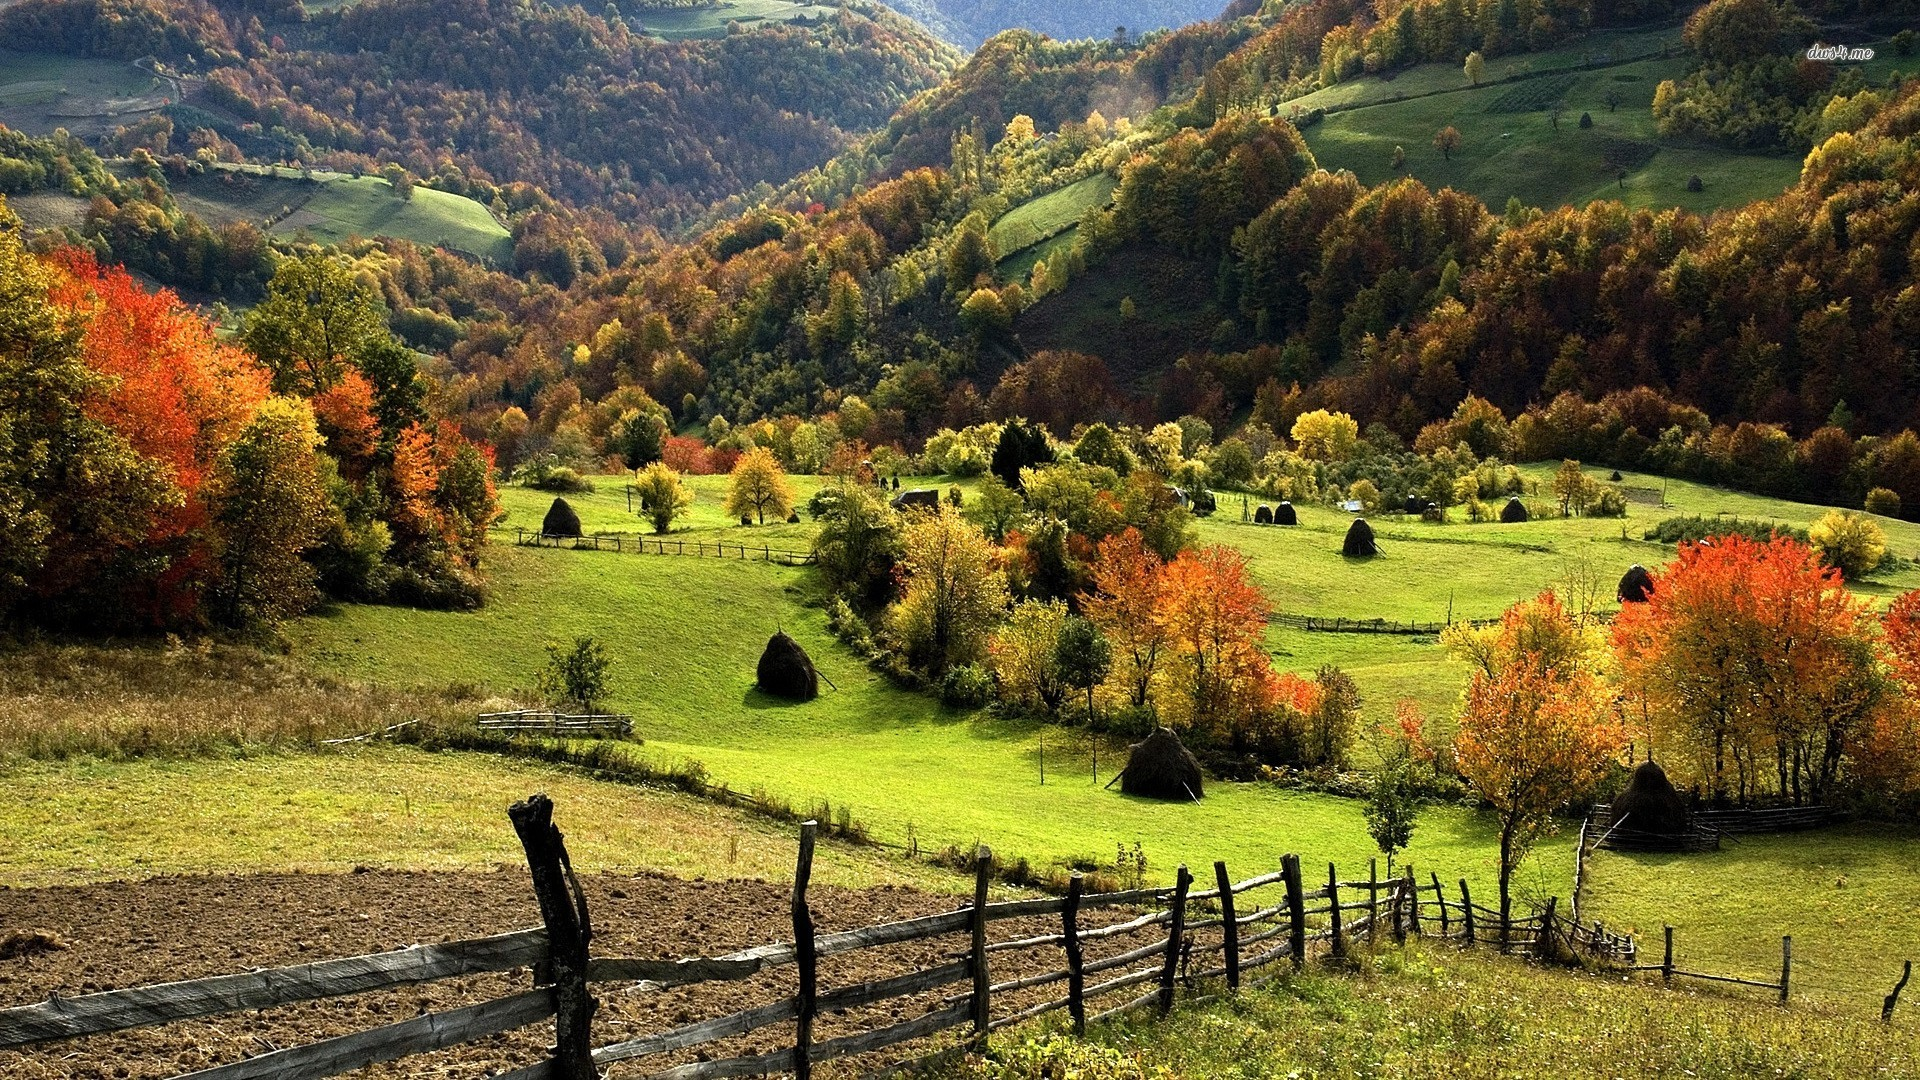 In the countryside photo